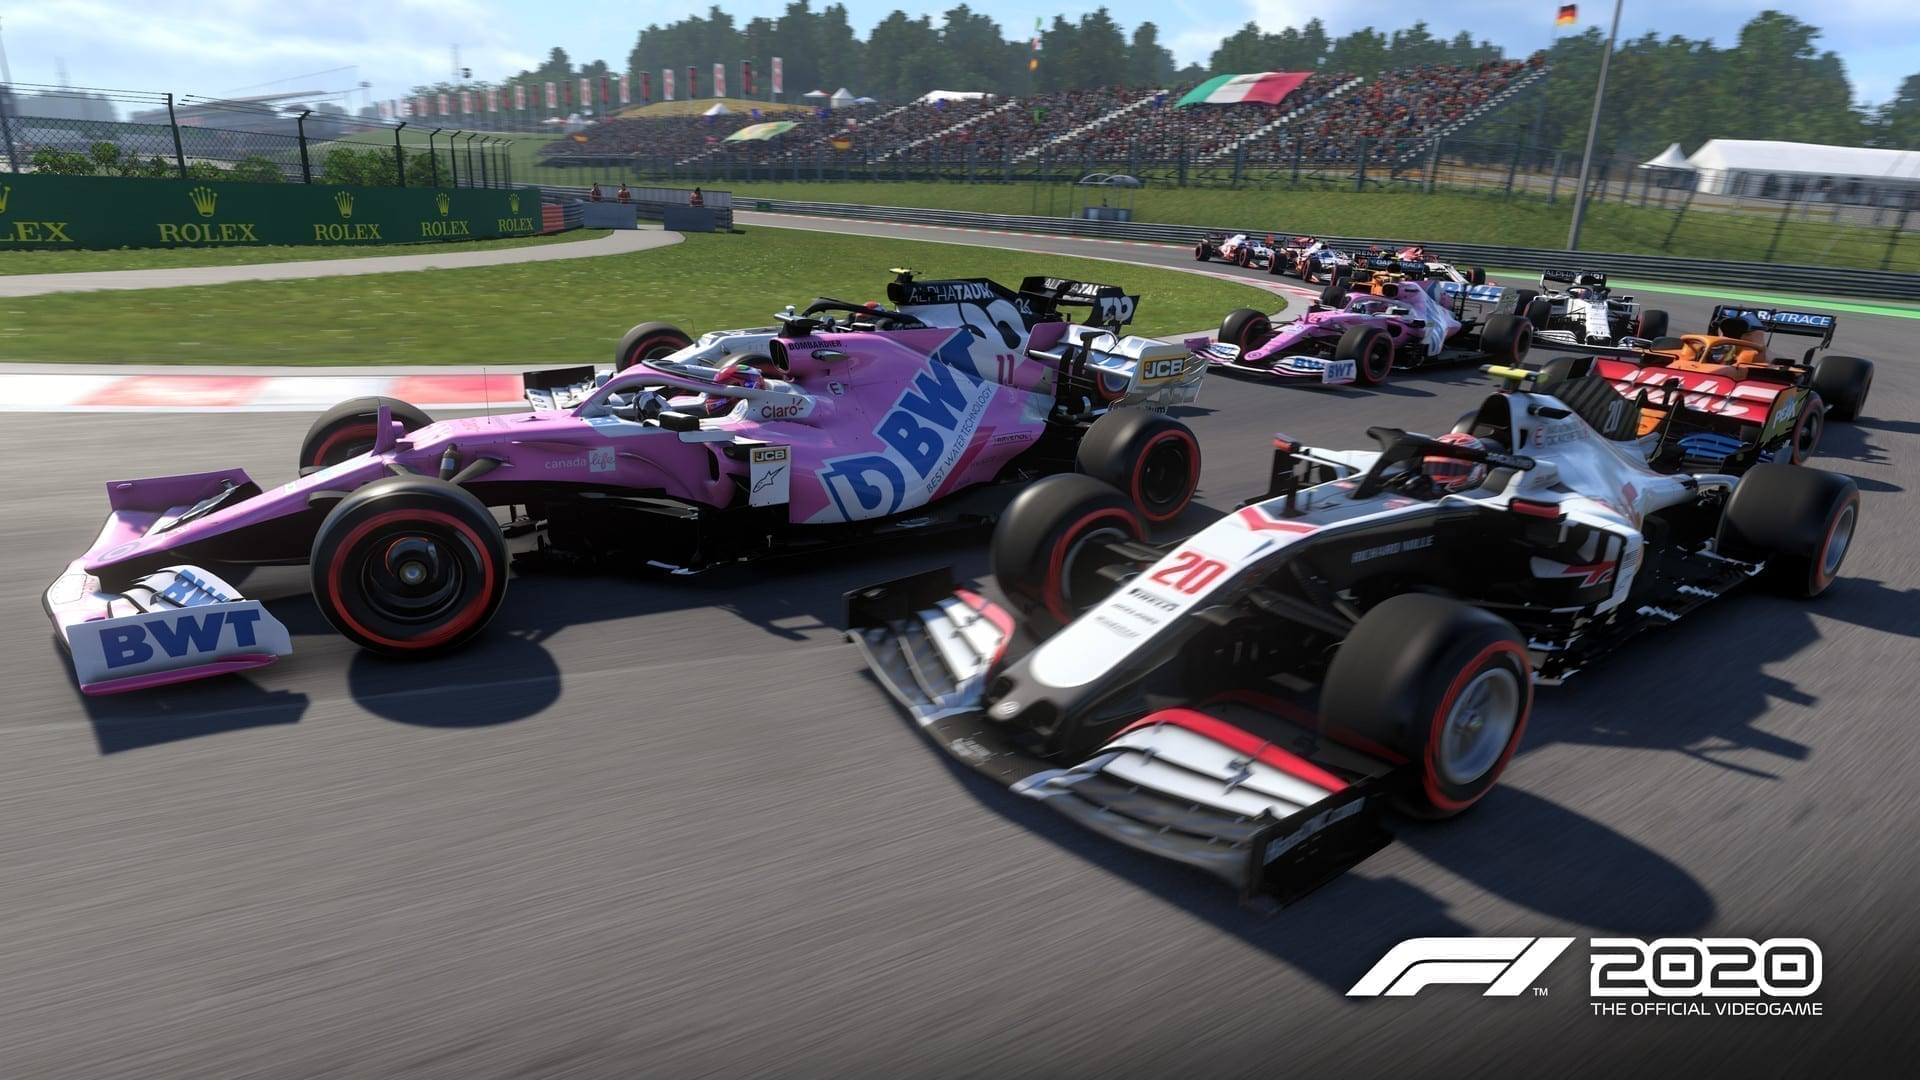 F1 2020 Tops UK Physical Sales Charts.